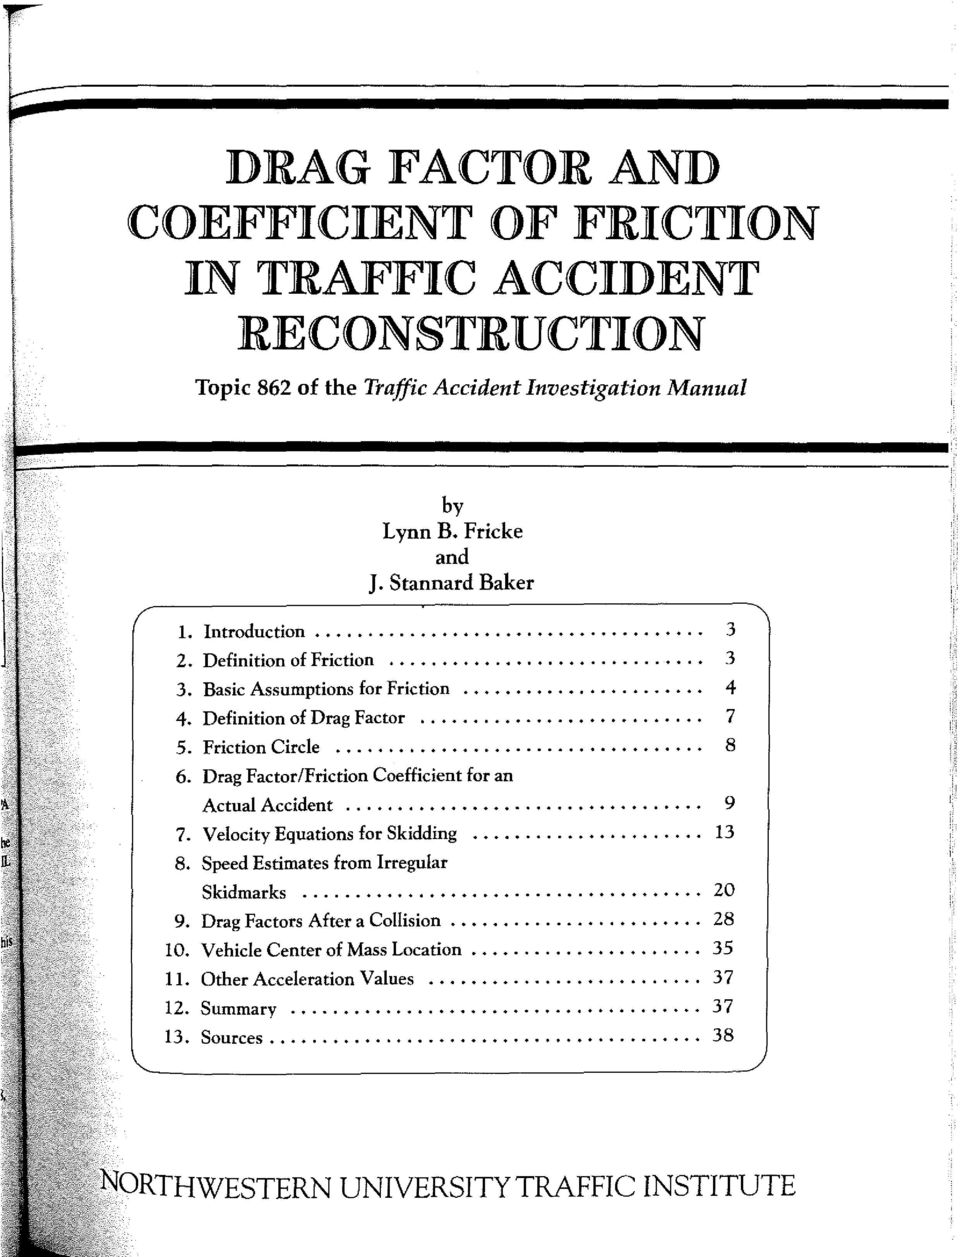 DRAG FACTOR AND COEFFICIENT OF FRICTION IN TRAFFIC ACCIDENT ...